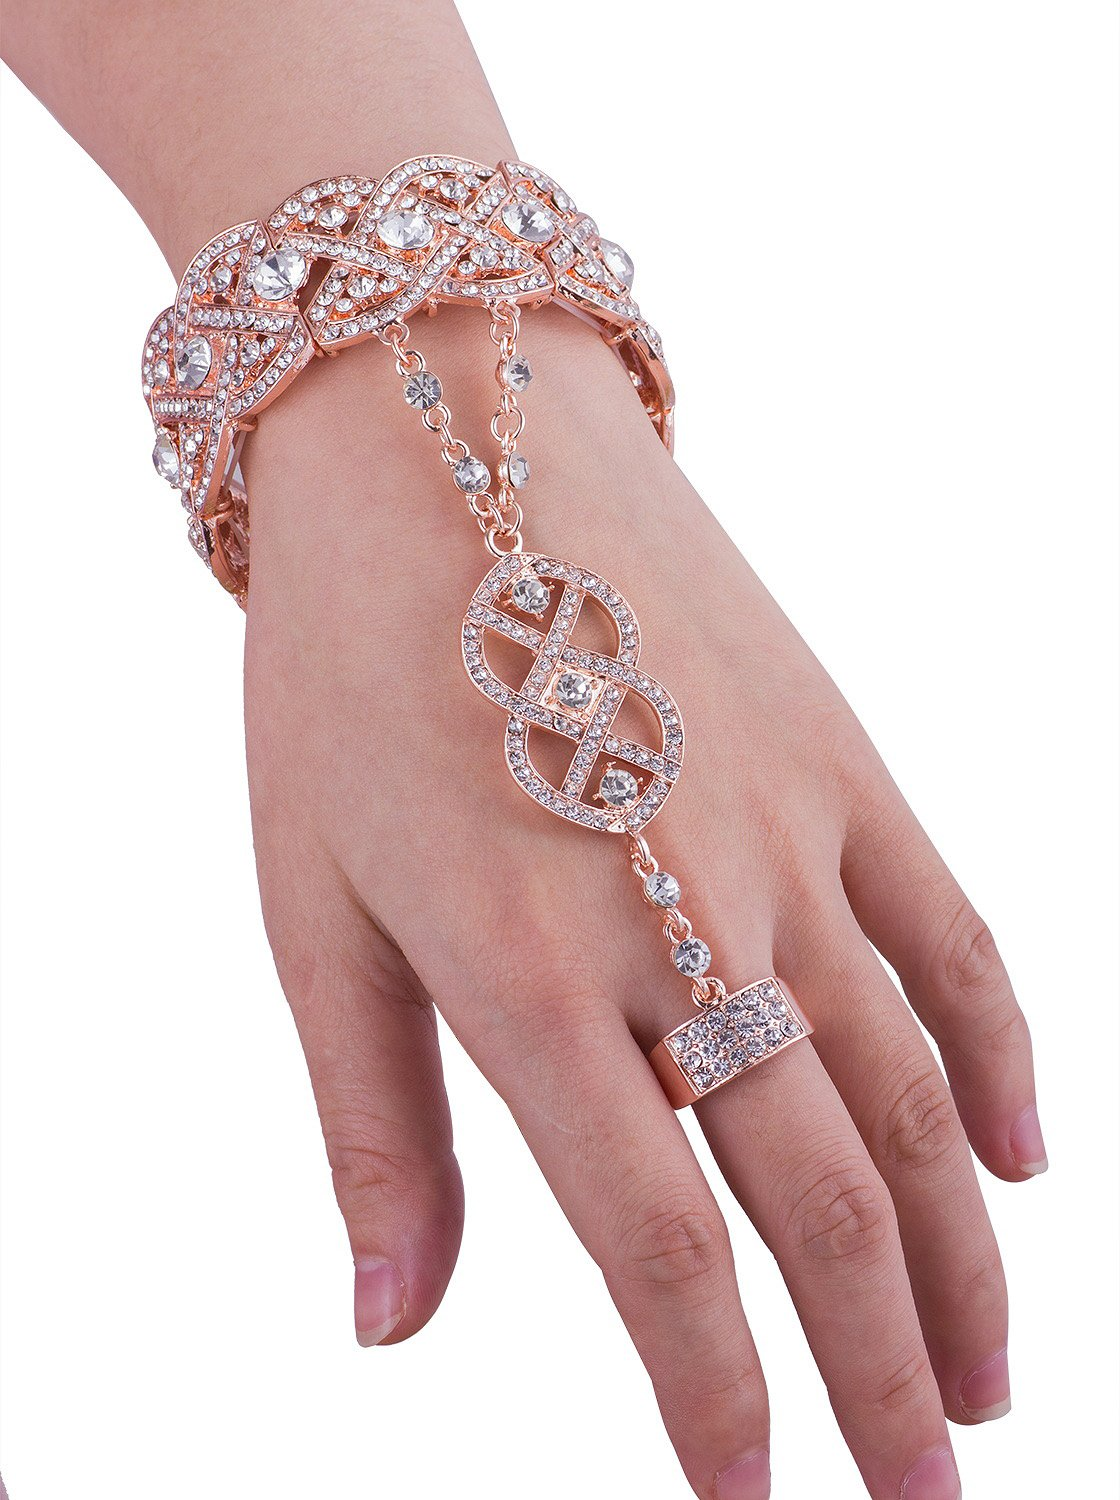 Vijiv Gold 1920s Flapper accessories Bracelet Ring Set Great Gatsby Style 20s Jewelry For Party by Vijiv (Image #5)